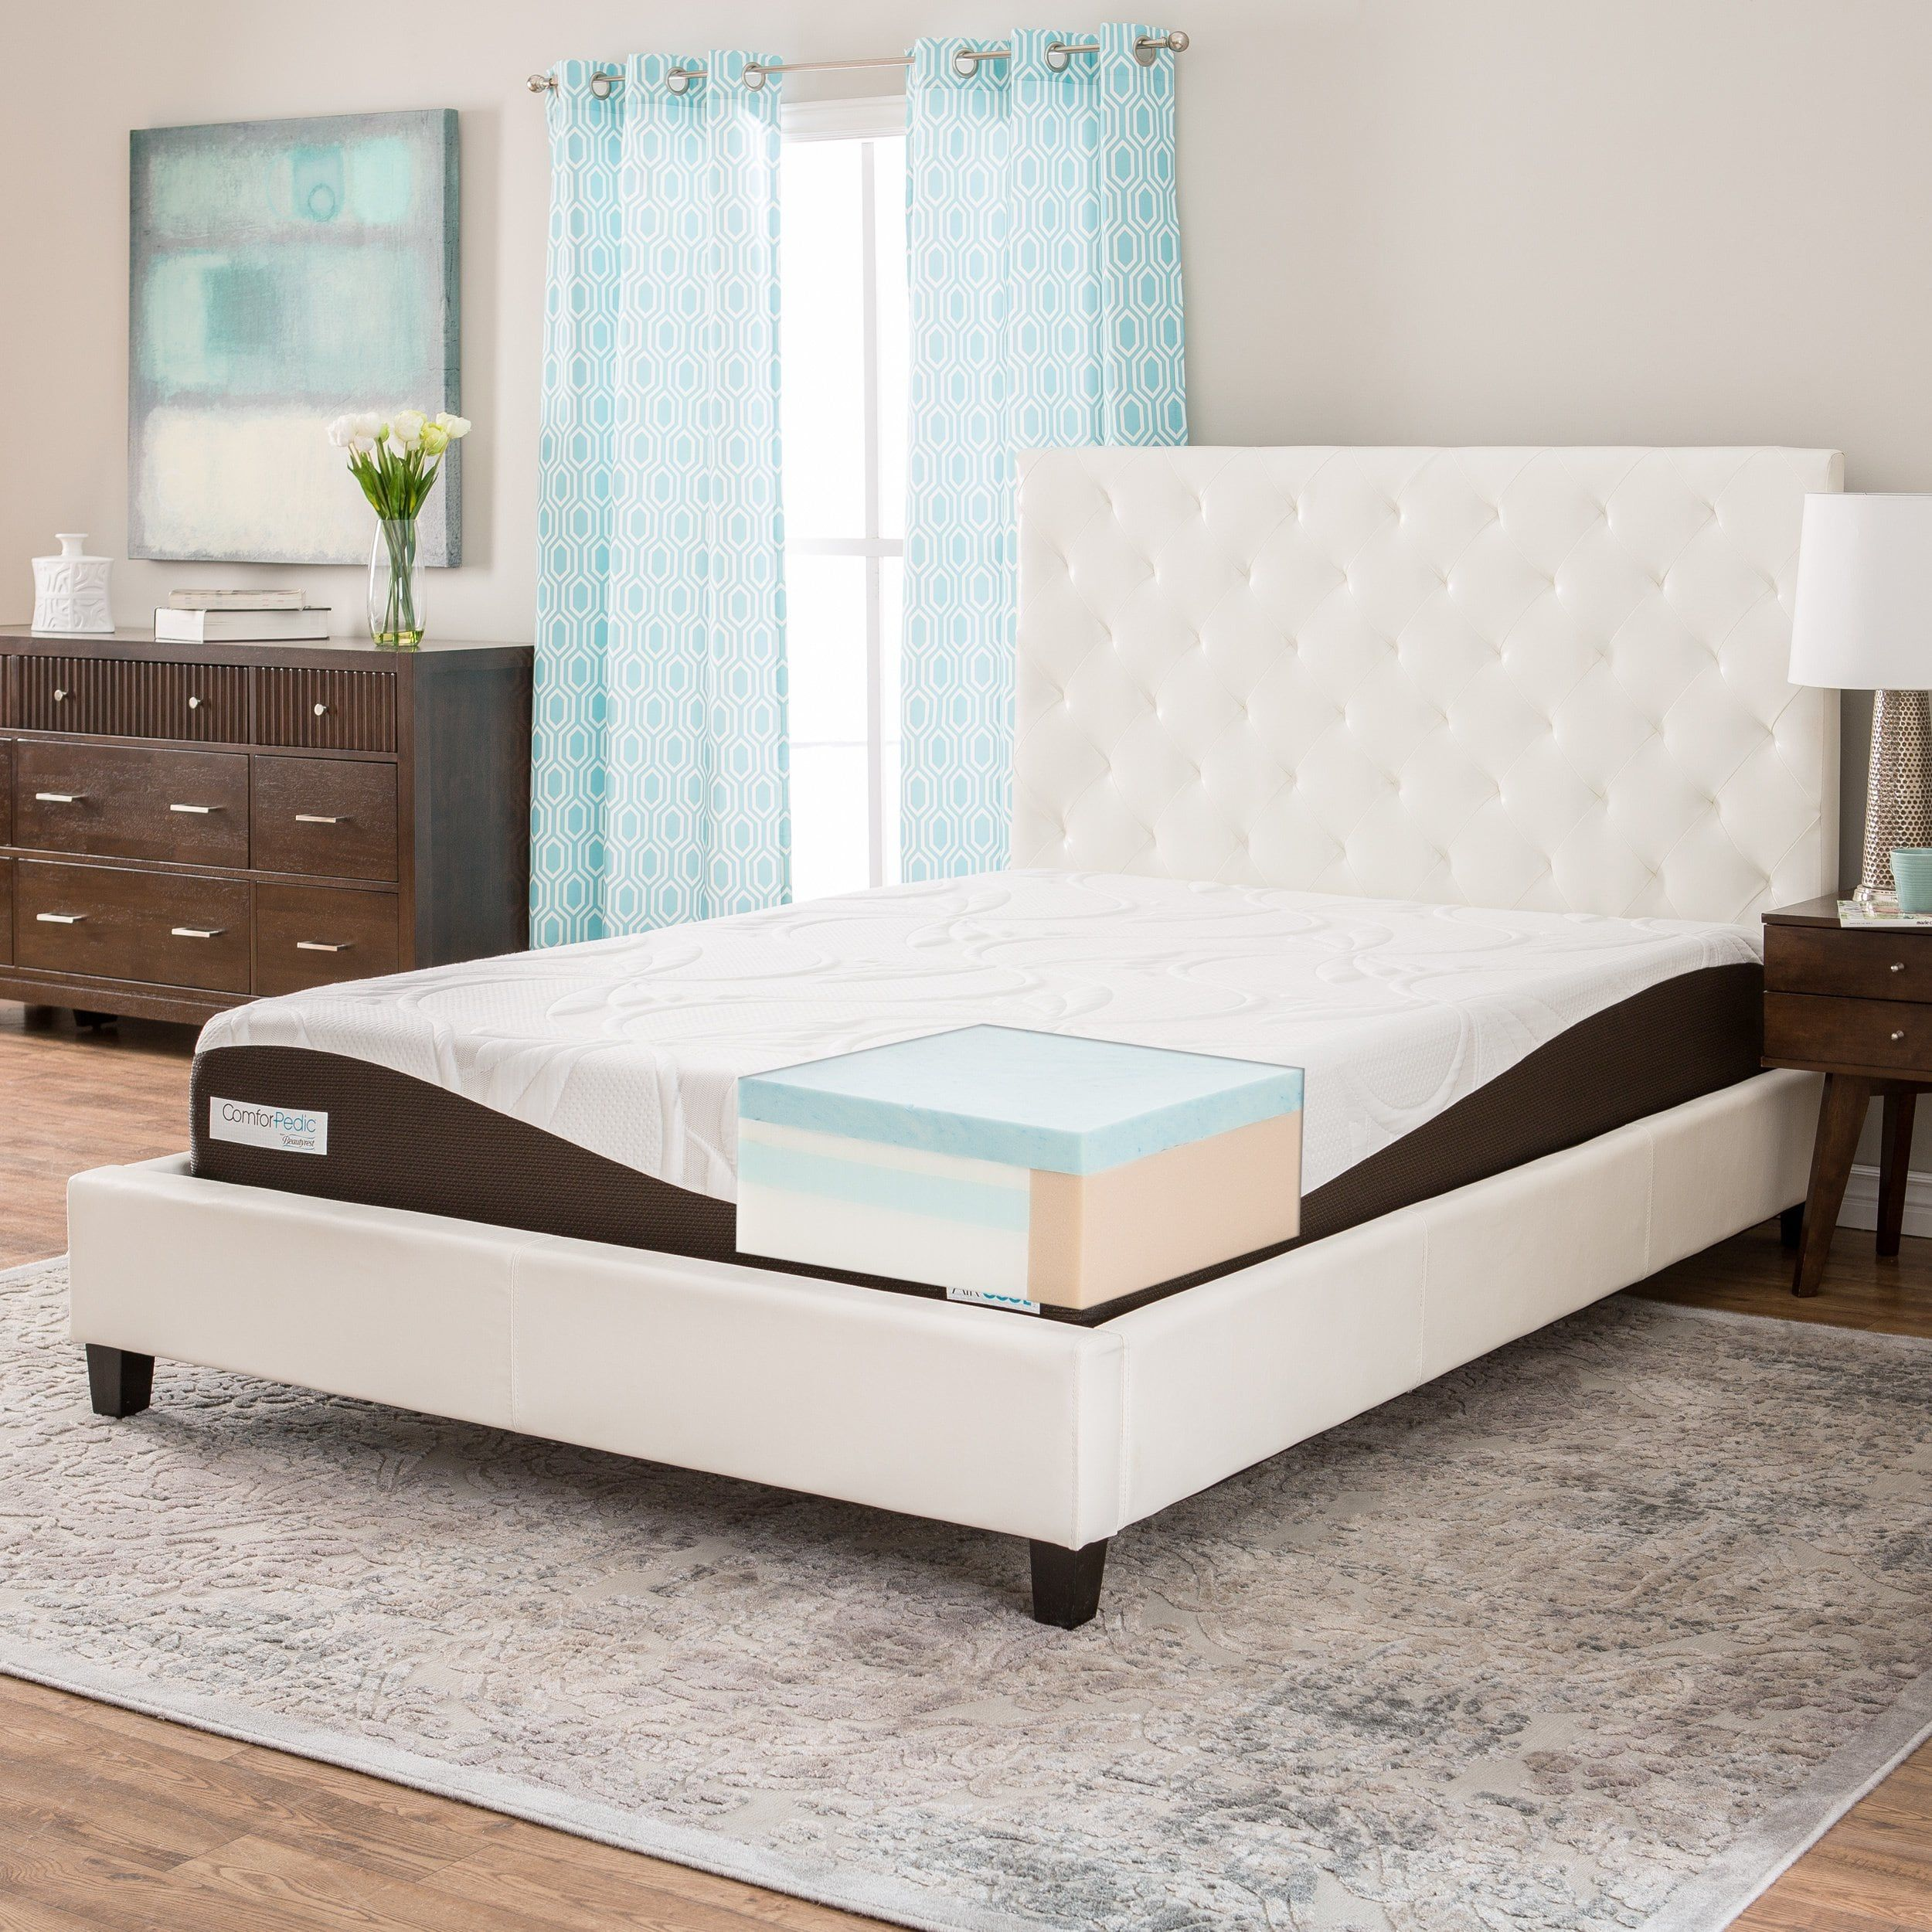 Comforpedic From Beautyrest 10 Inch Gel Memory Foam Mattress Queen